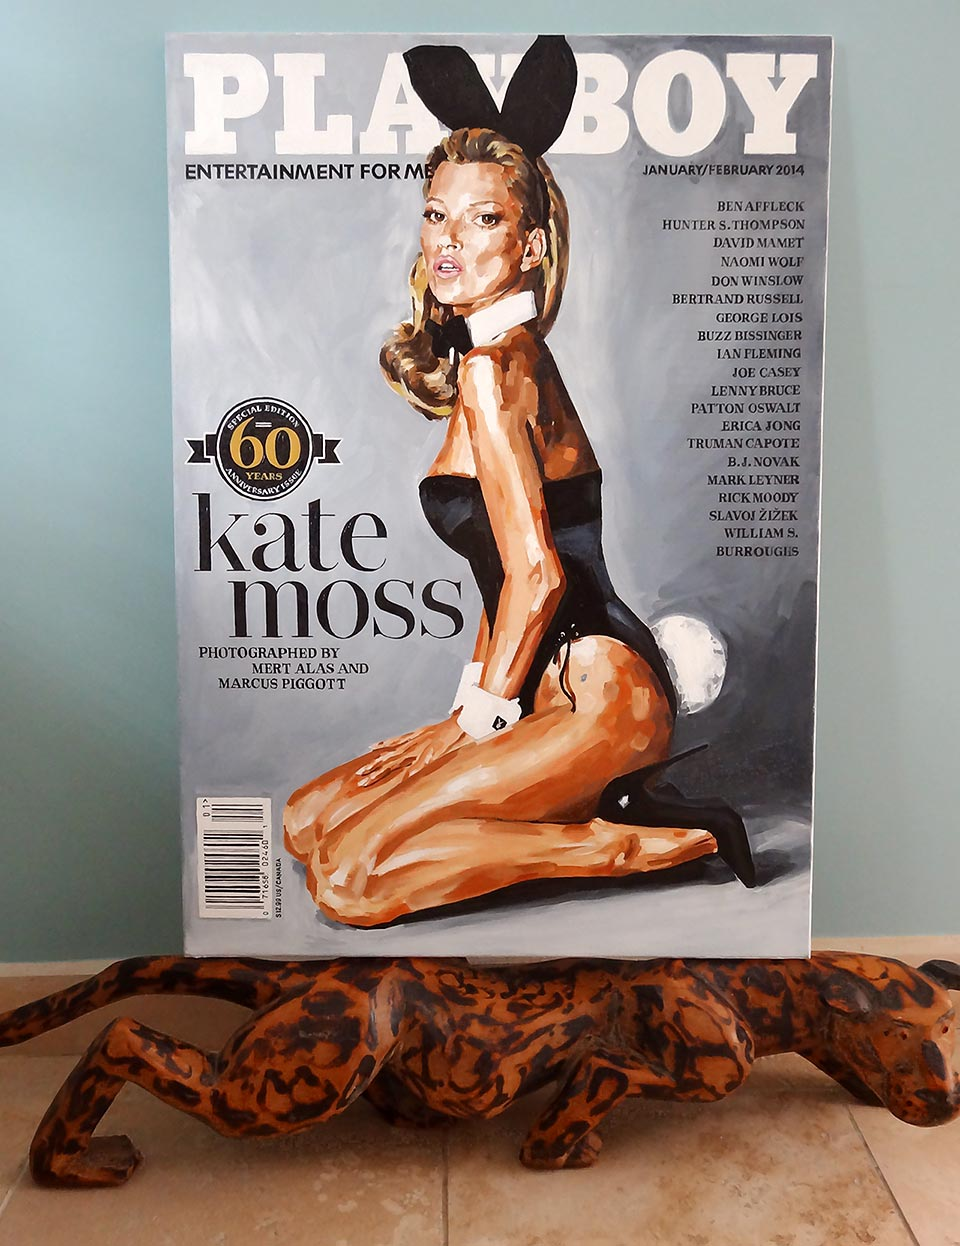 Kate Moss Playboy cover painted by JubeJube